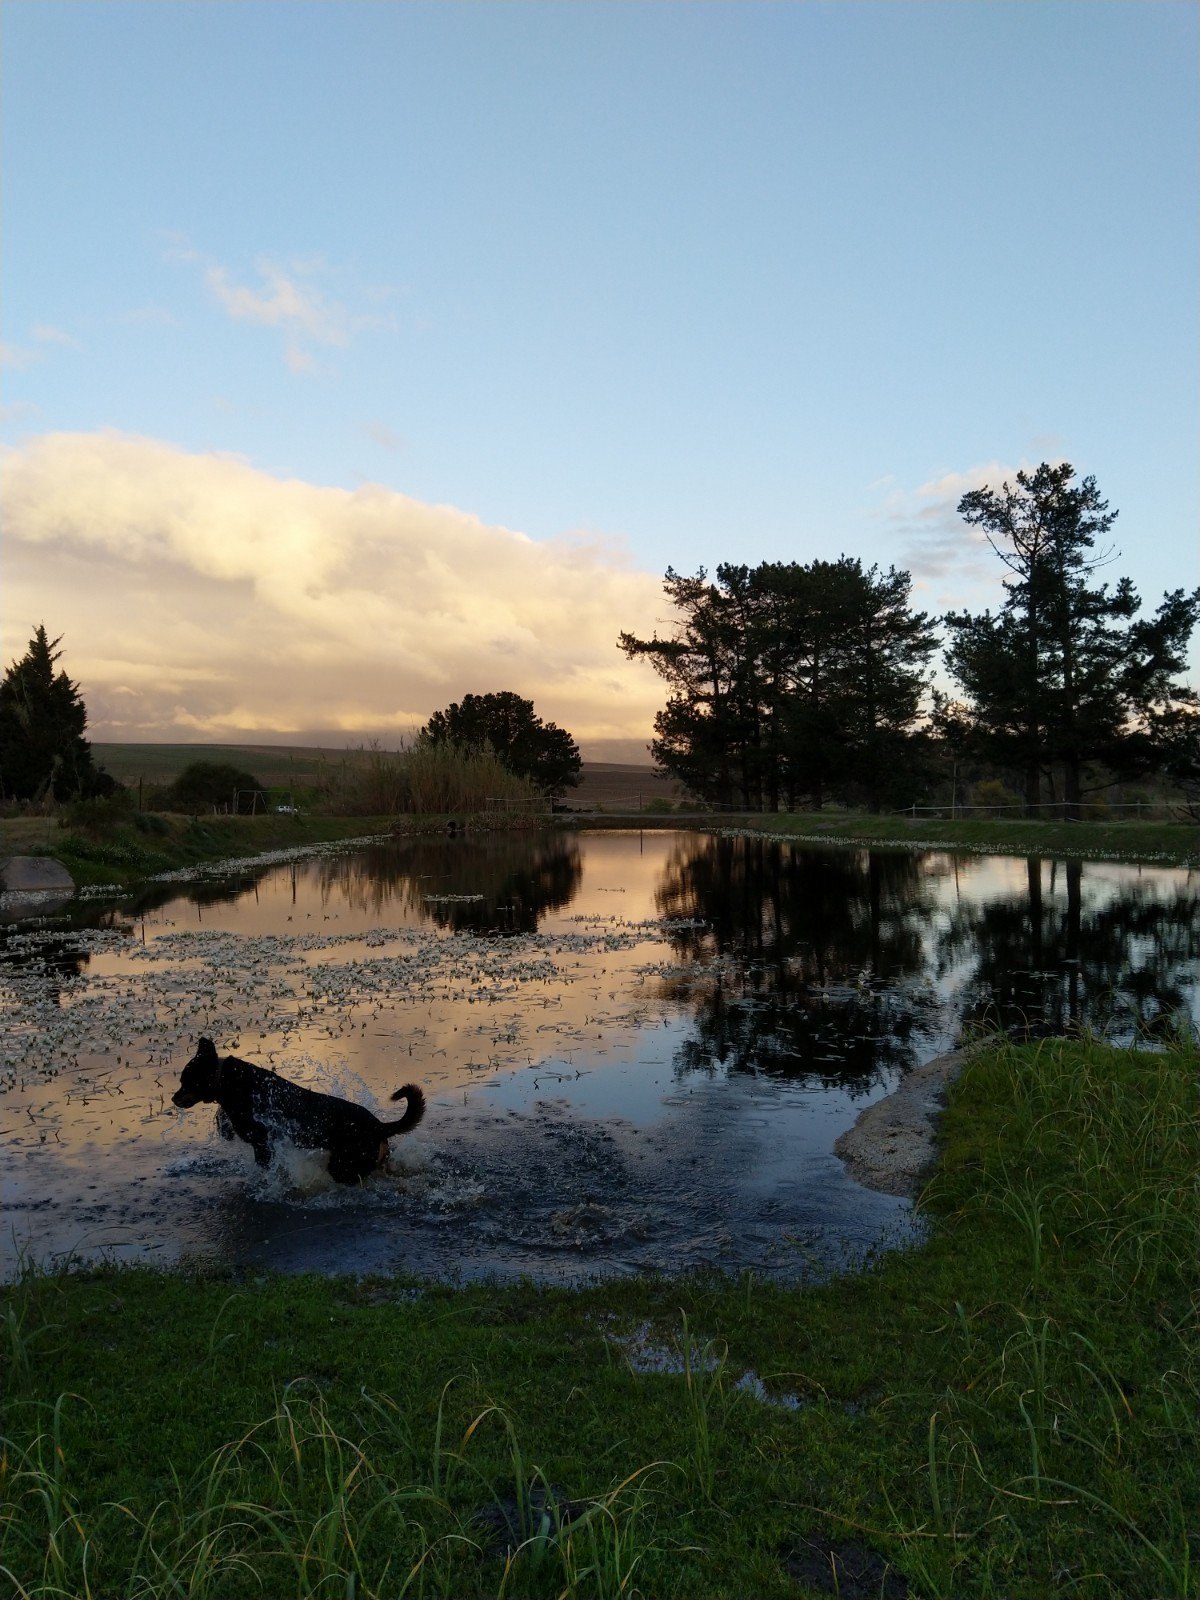 After the winter rains, the dams are (hopefully) all filled to the brim. My garndparents' dog, Titania, splashing through waterblommetjies.